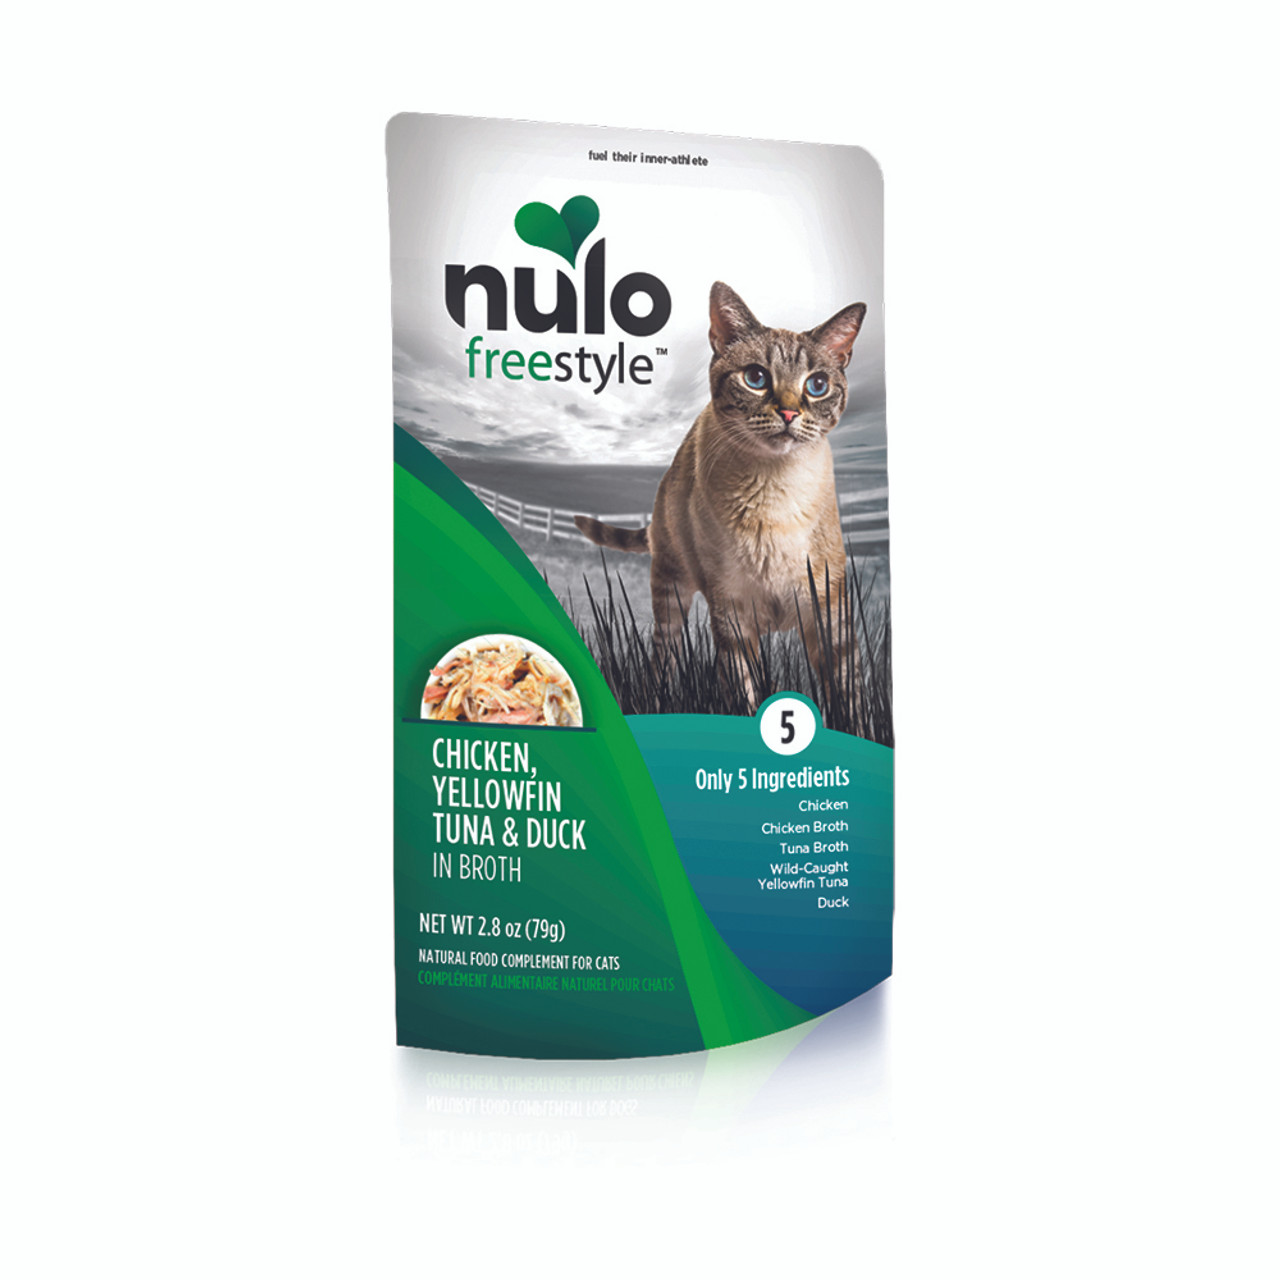 Nulo Freestyle Chicken, Yellowfin Tuna & Duck in Broth Cat Food Pouch